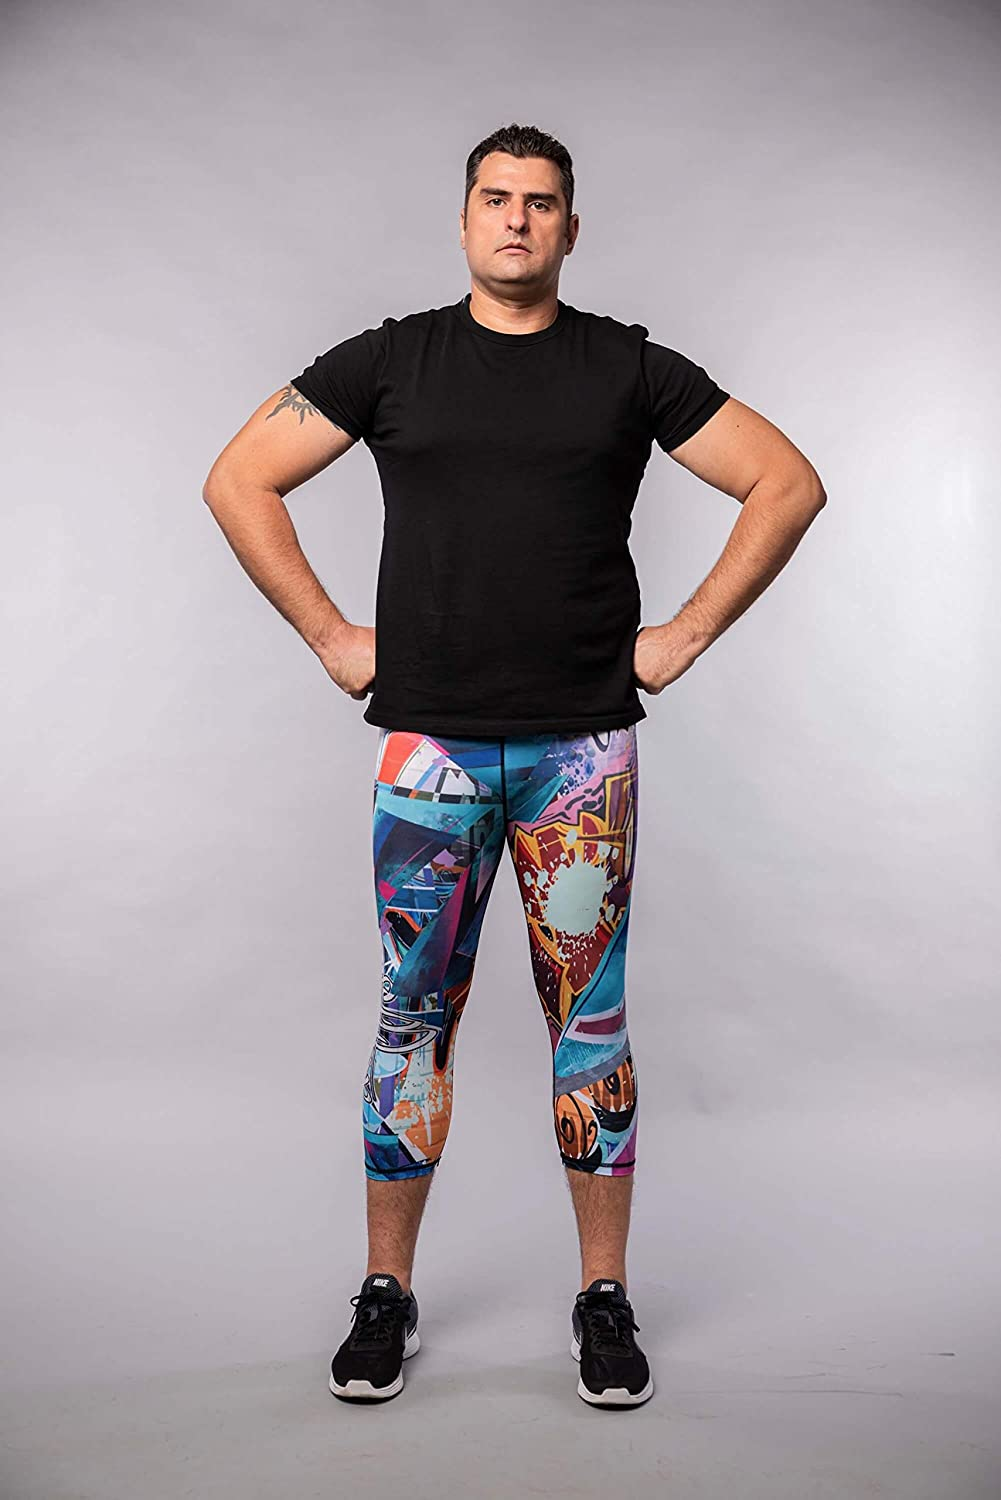 Compression Tights Kapow Mens 3//4 Performance Leggings with Pockets Yoga Workouts Running Gym Colorful Sports Base Layer